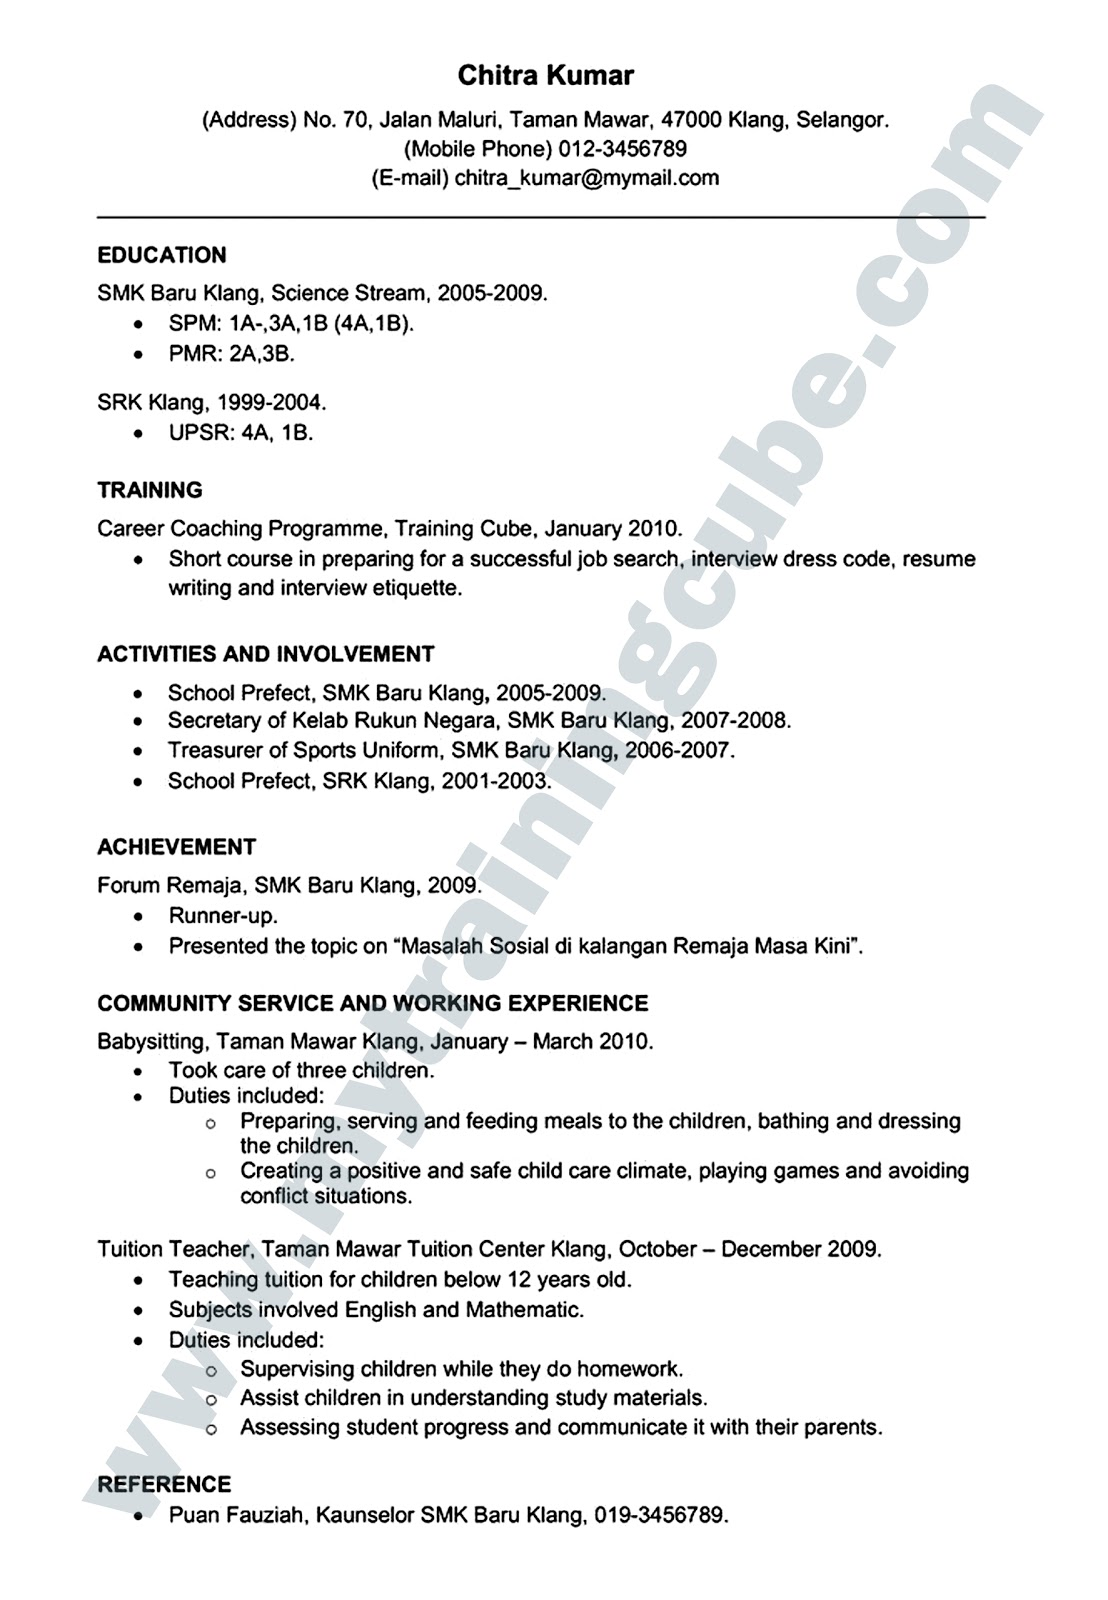 Contoh cover letter dan resume scribd share the knownledge for Cover letter for domestic violence job